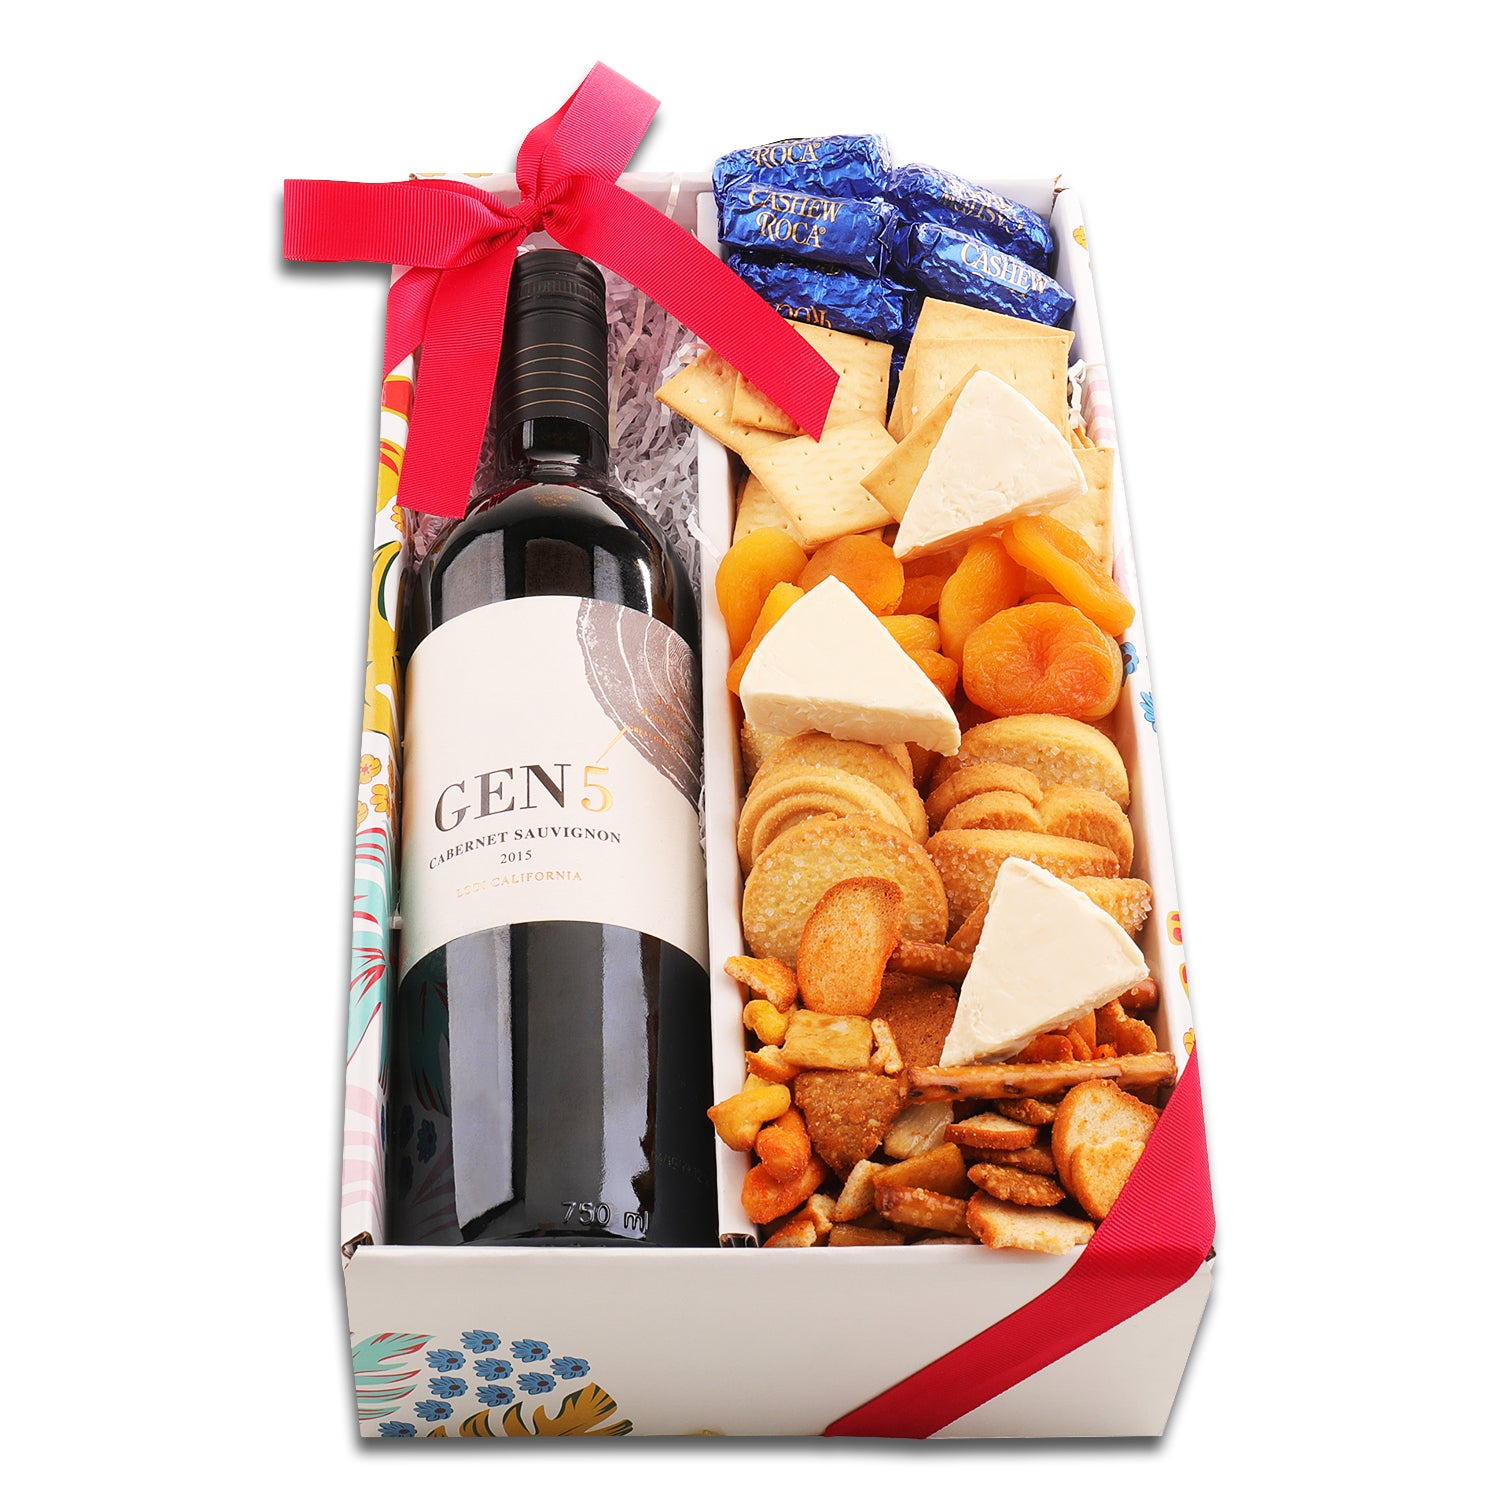 1 Bottle Gift Tray